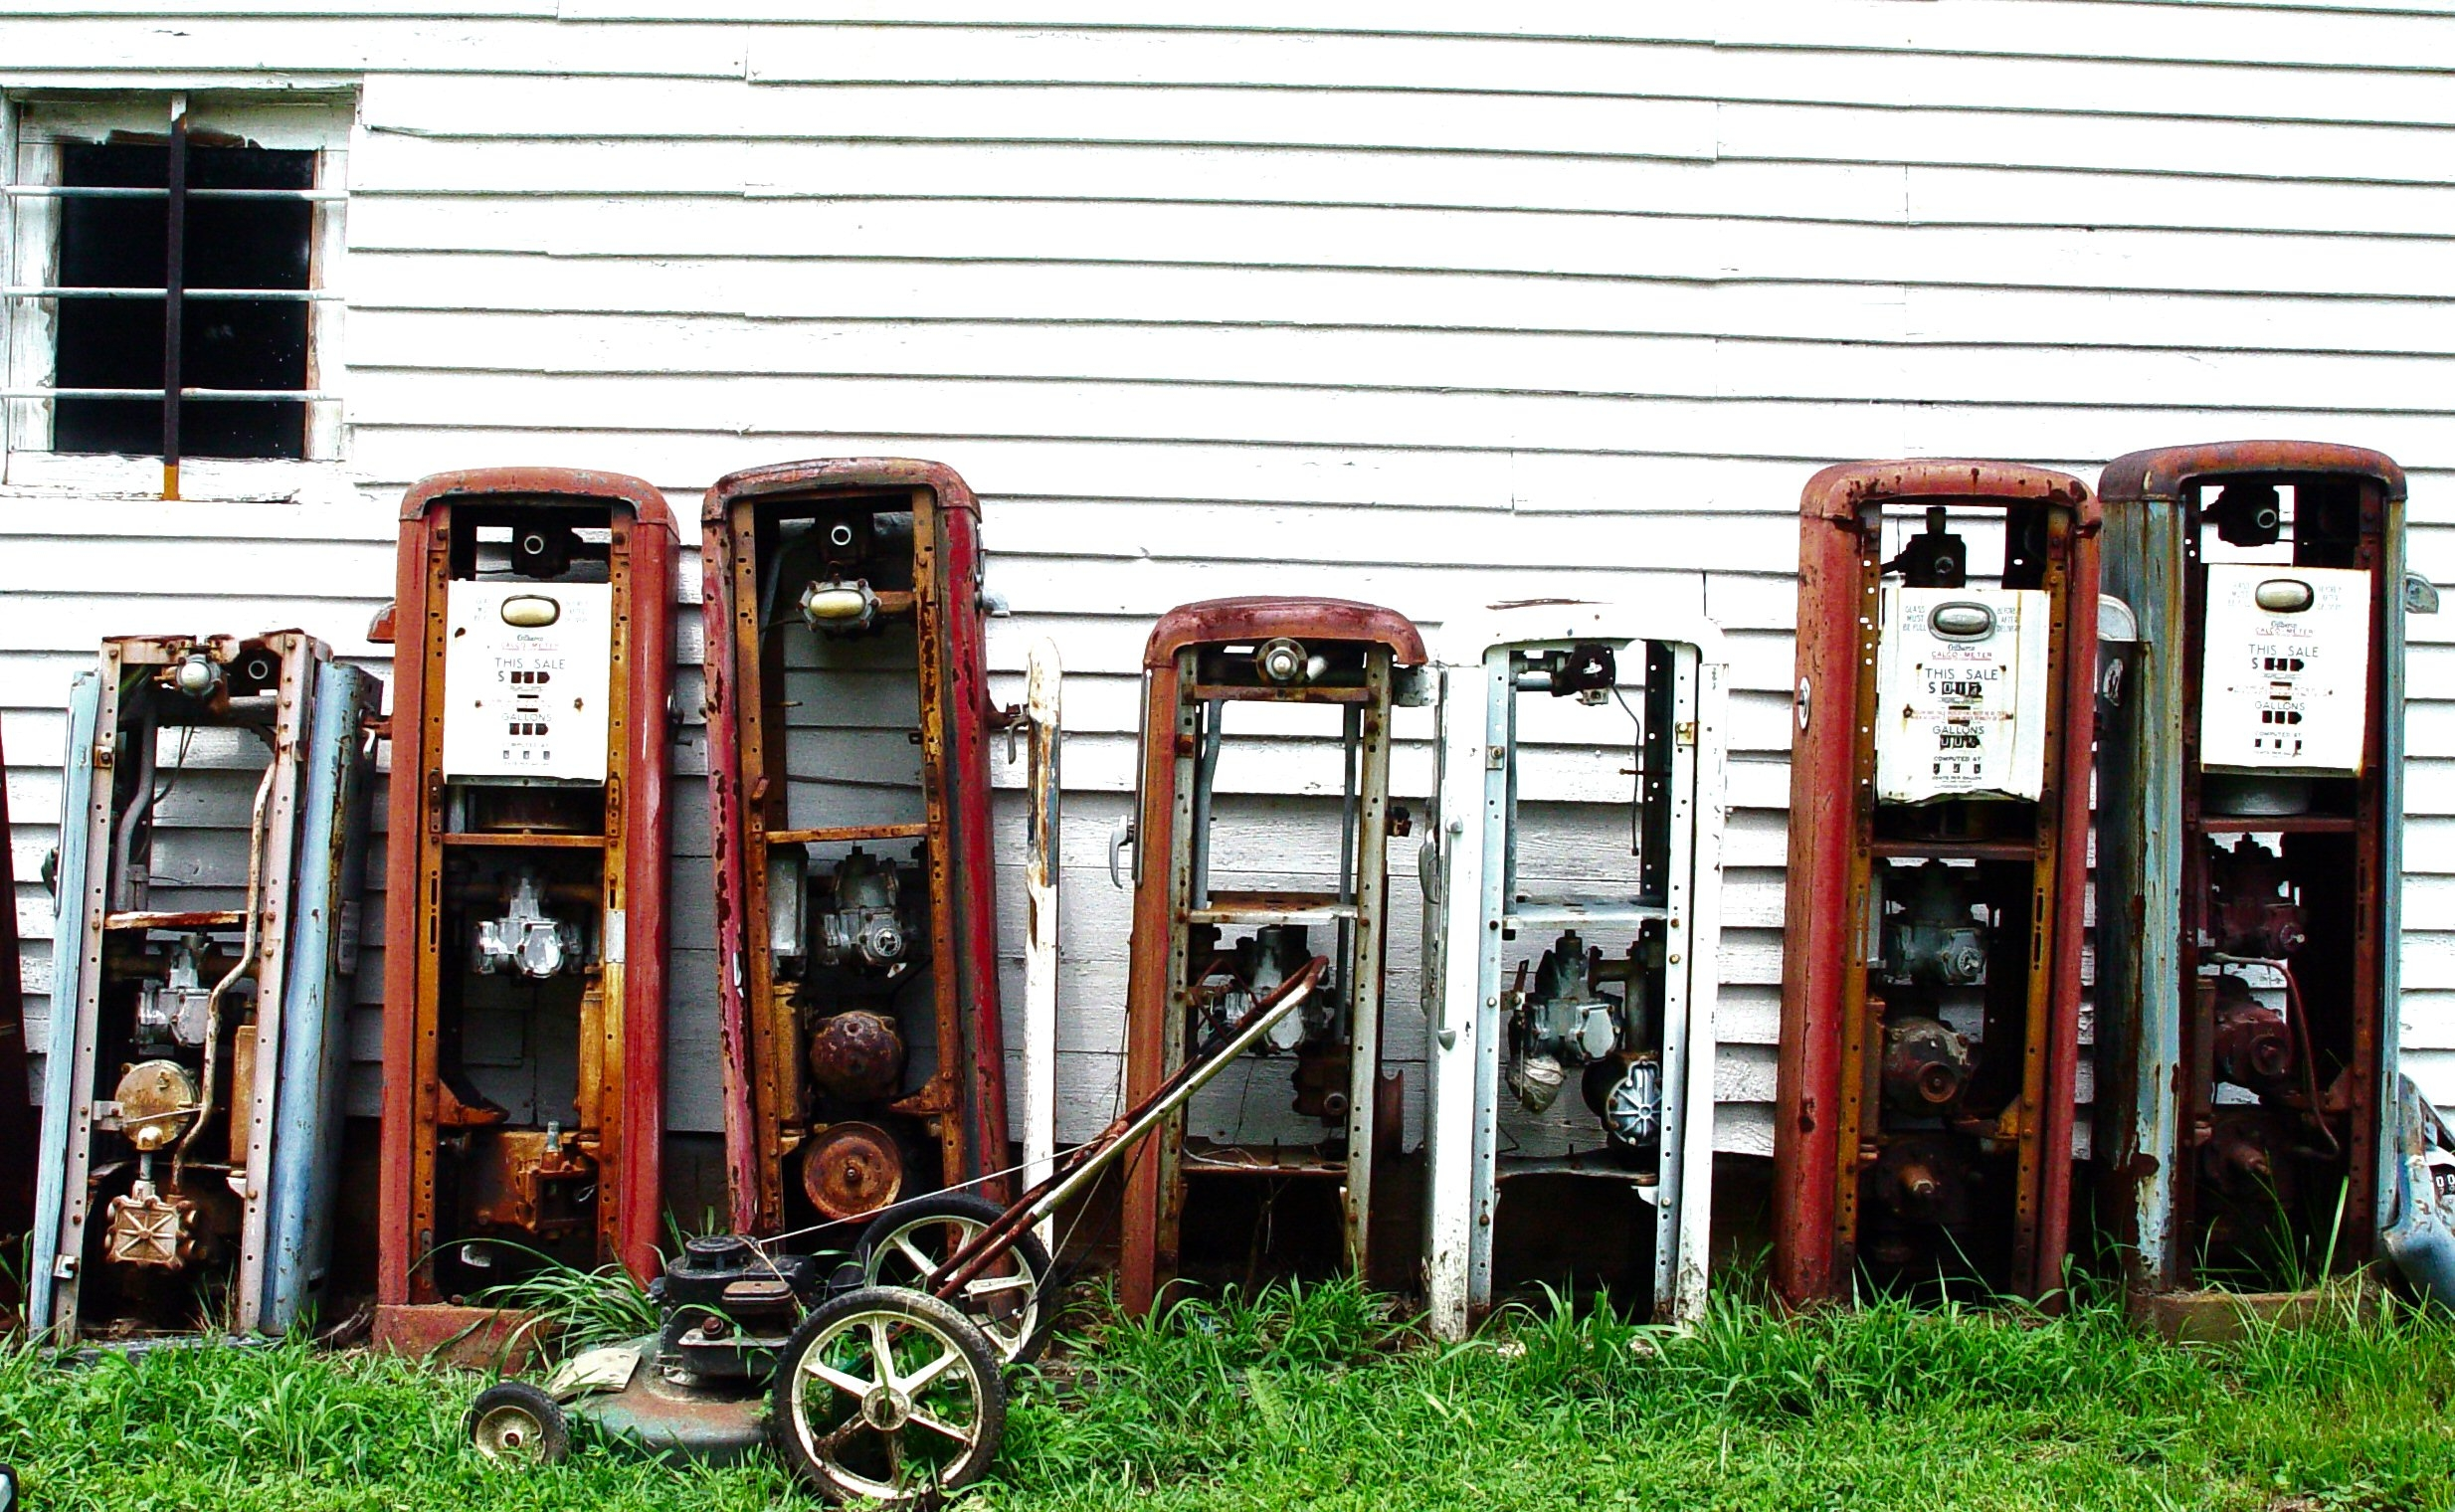 Old gas pumps